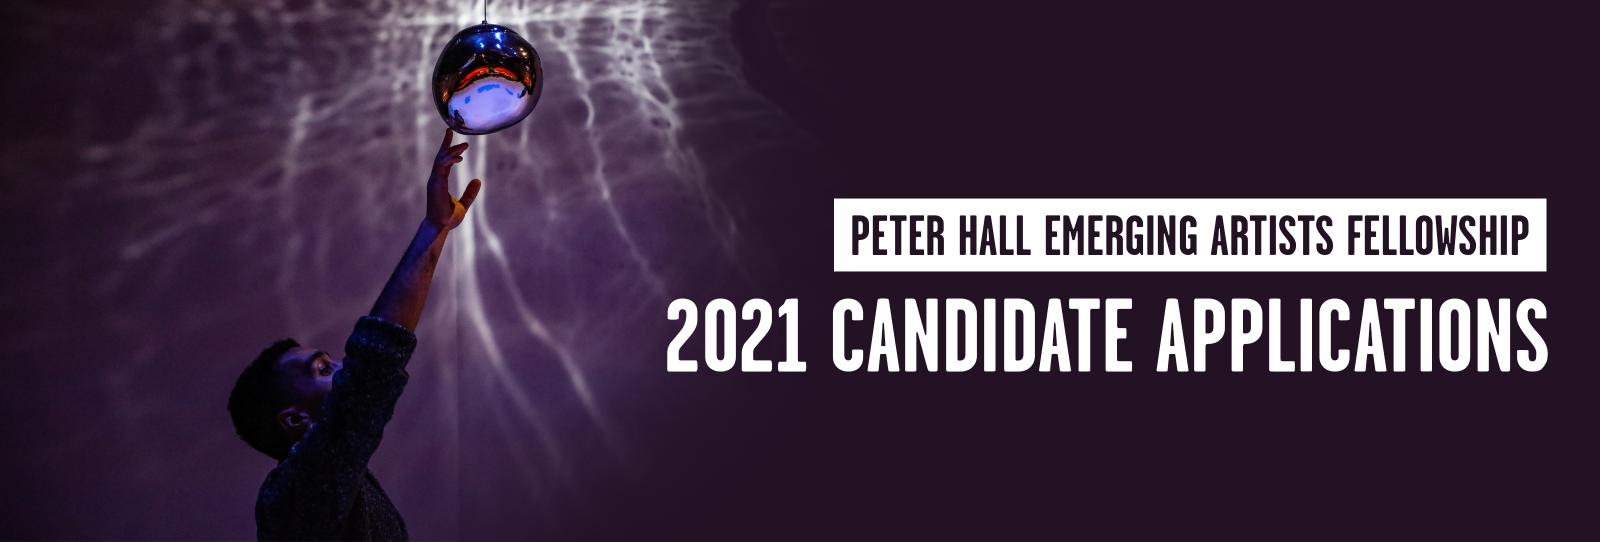 Peter Hall Emerging Artists Fellowship- 2021 Candidate Applications